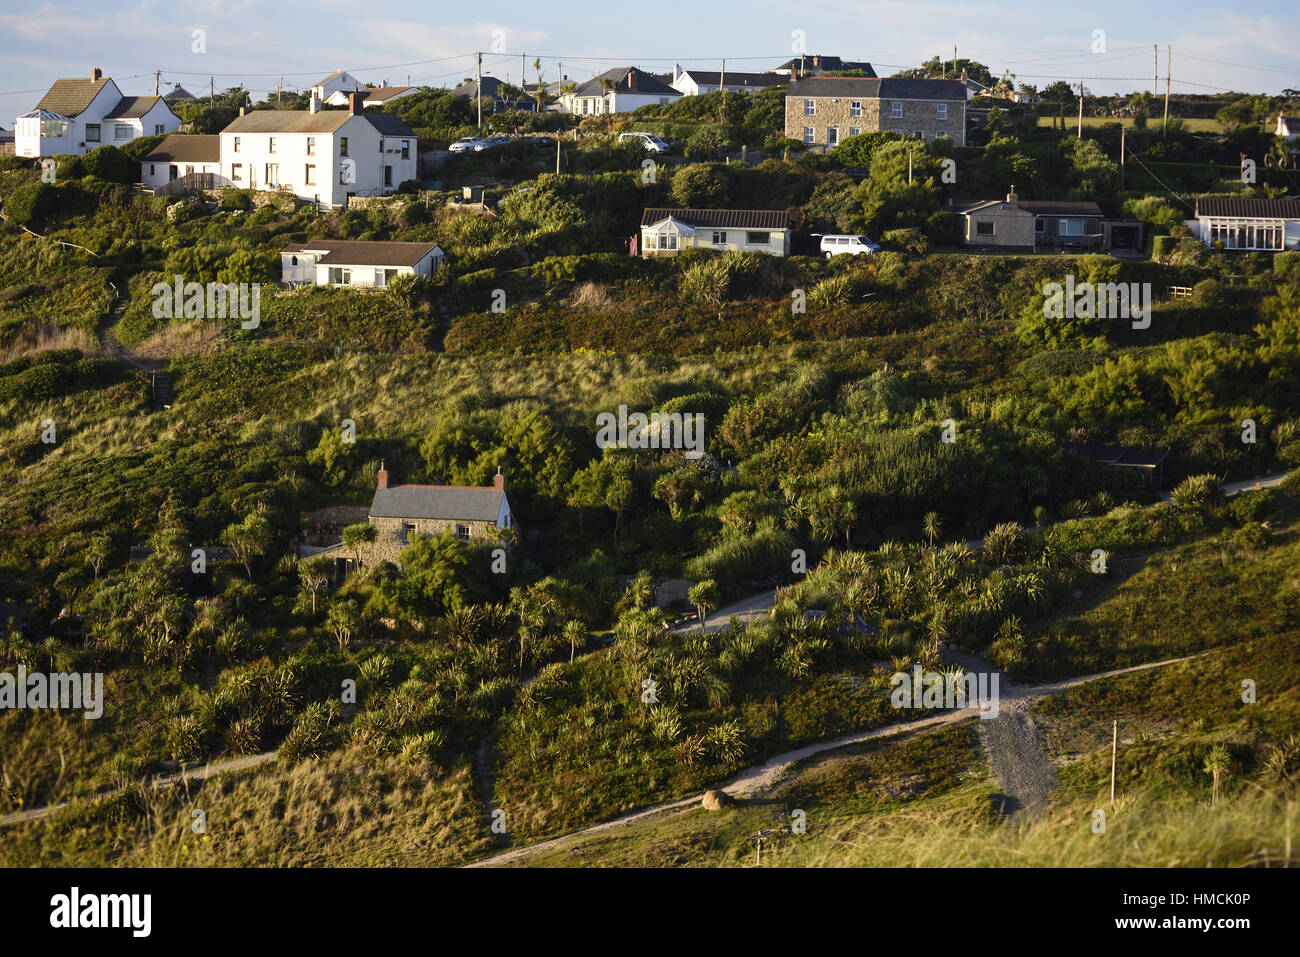 The houses of Carn Towan, Sennen, Cornwall, with footpaths leading from the coast up through the village. Marram - Stock Image